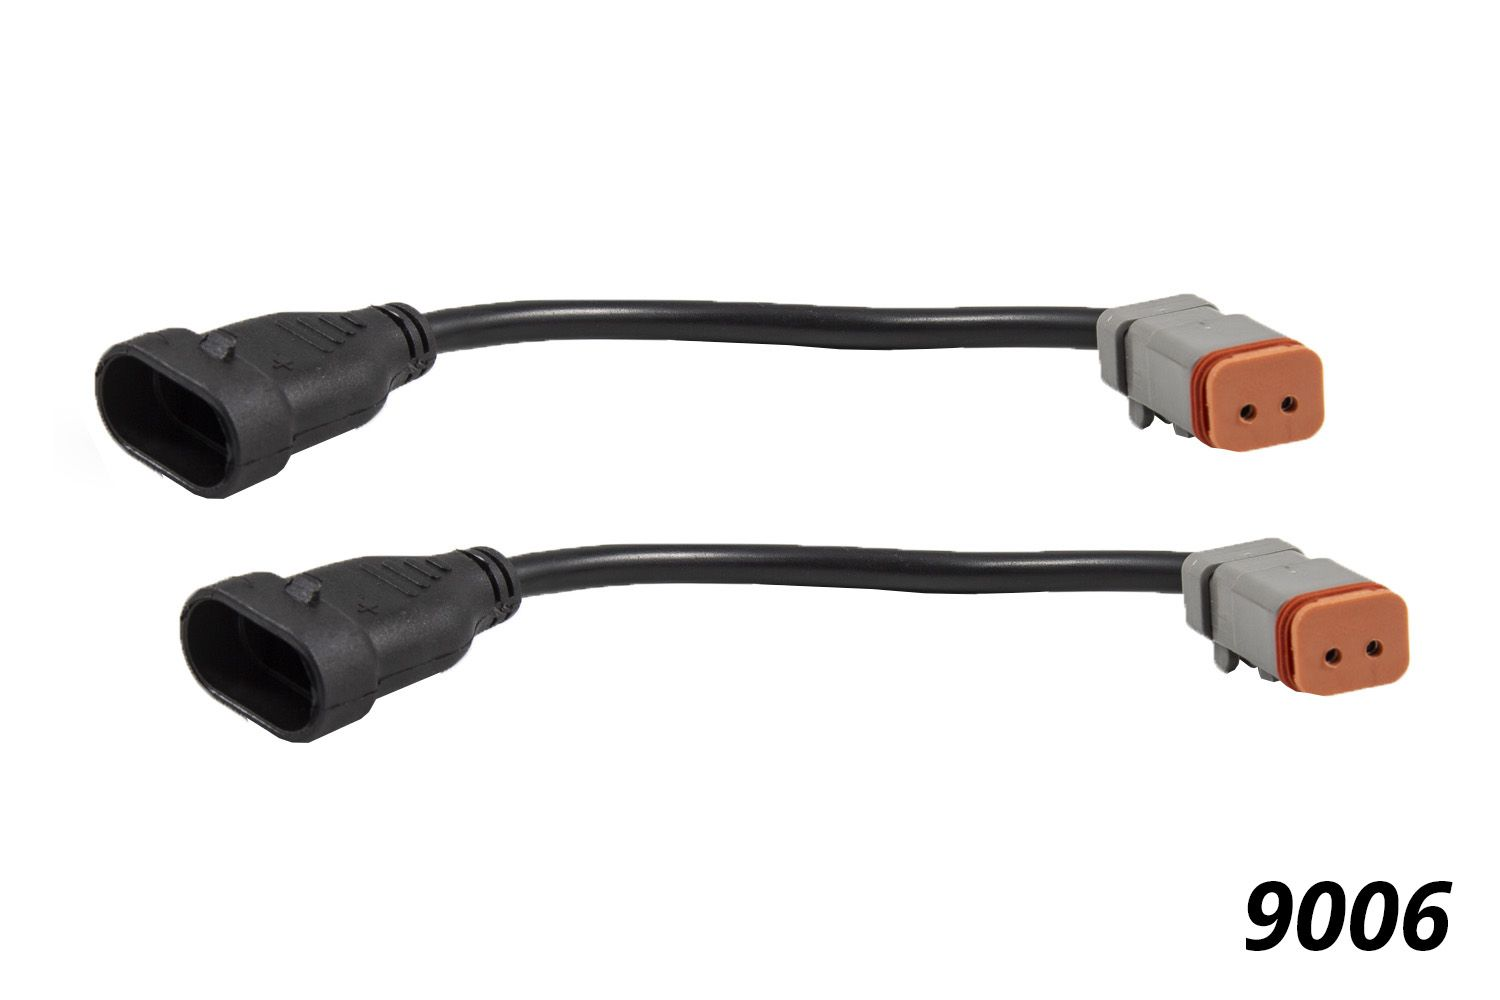 Deutsch DT Adapter Wires (pair)